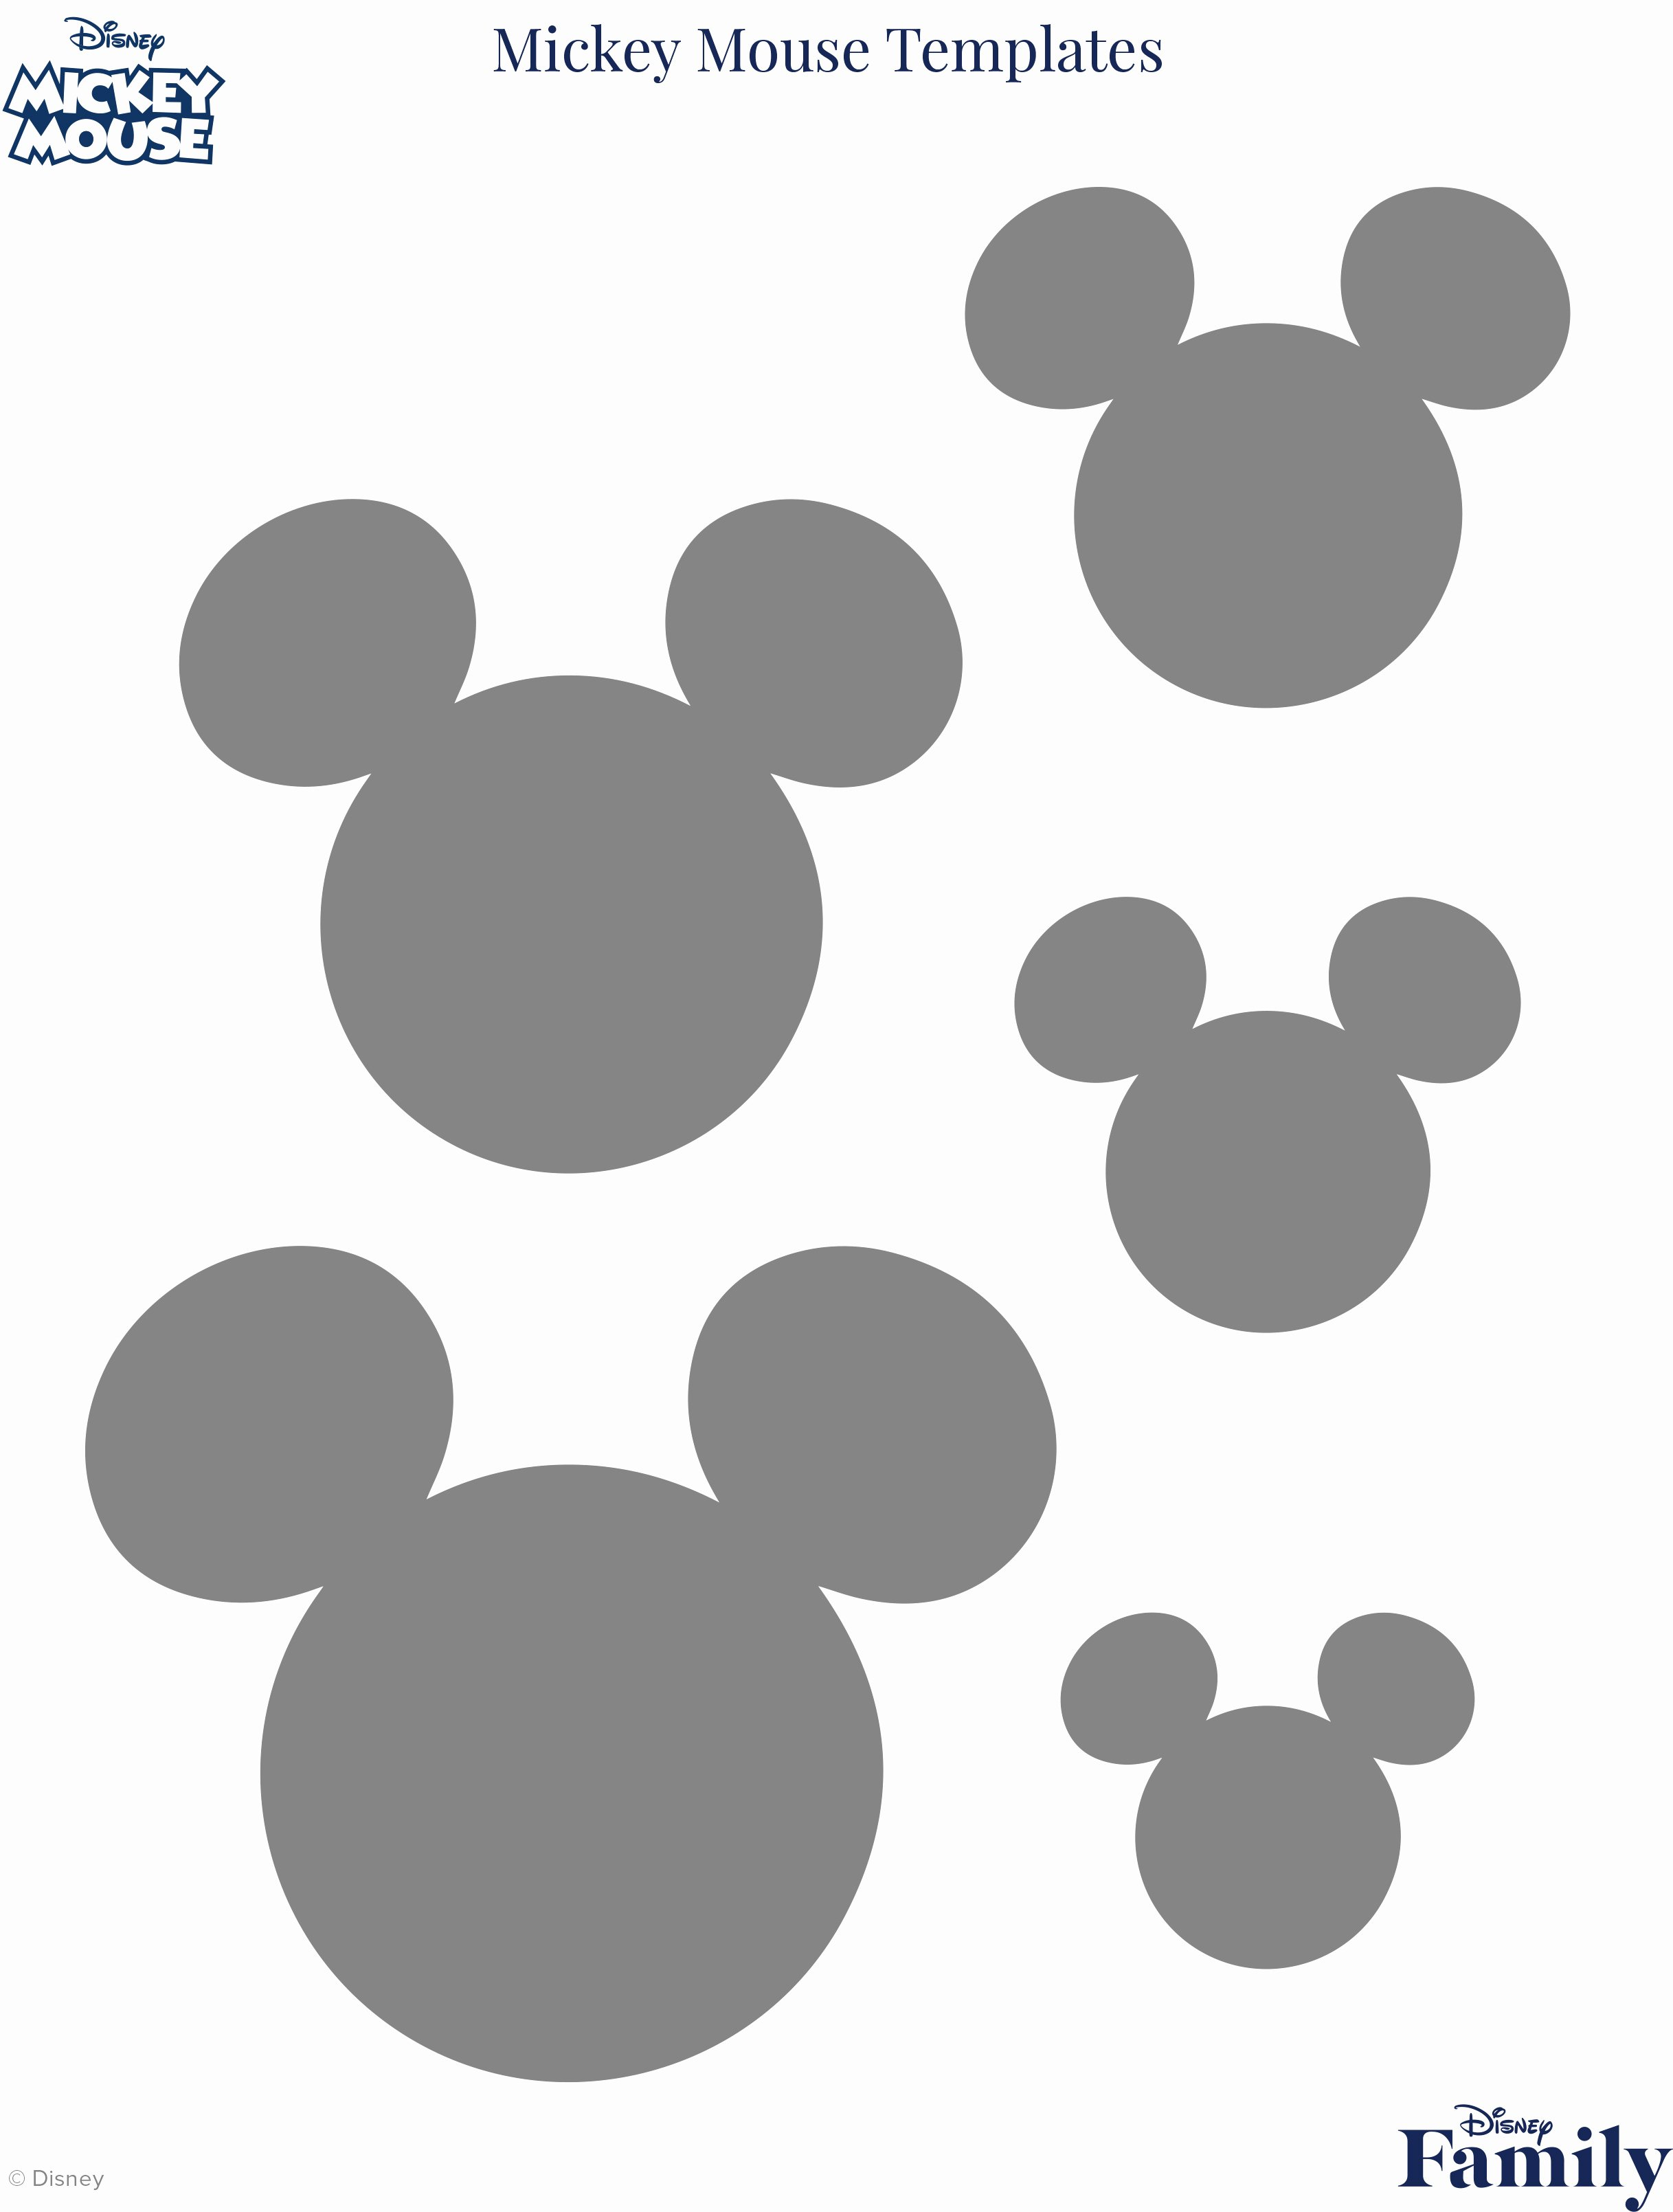 Mickey Mouse Head Stencil Luxury Mickey Mouse Template